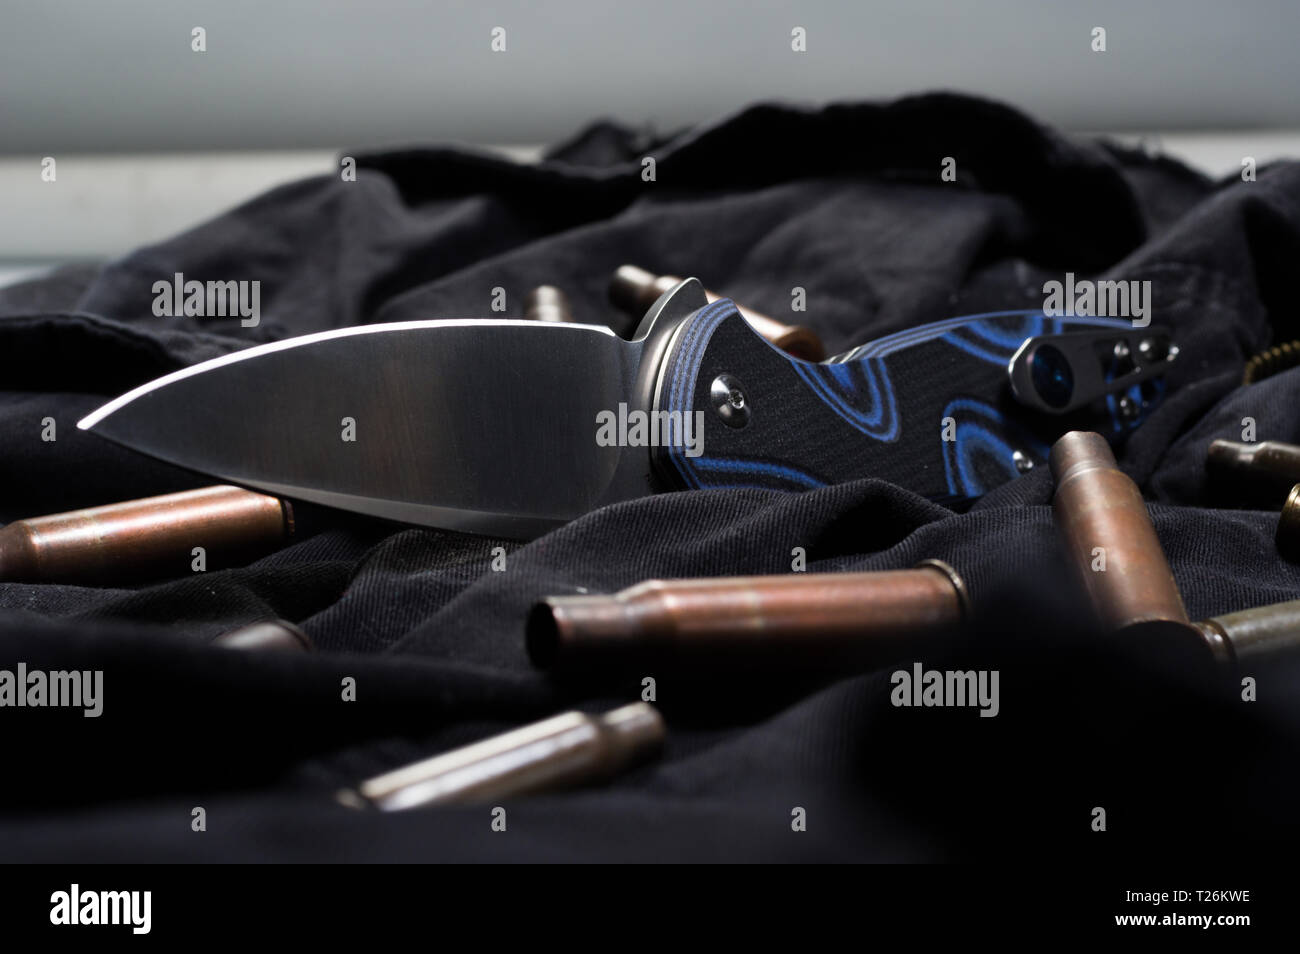 Scattered ammunition on a black background. Cartridges and knife. Front view. - Stock Image